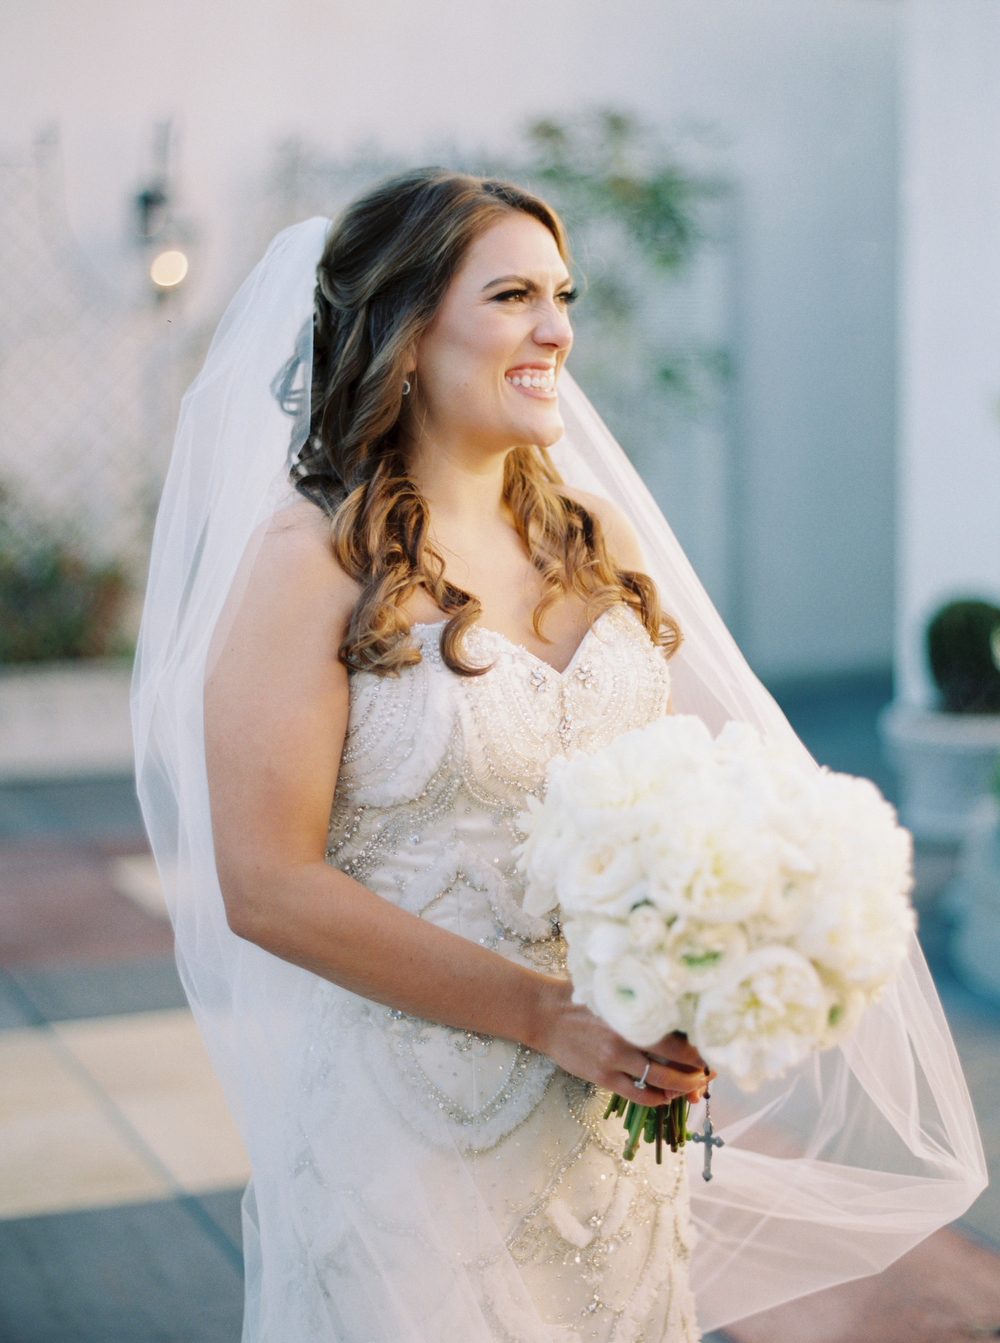 excited bride smiling and holding a white floral bouquet in her wedding dress and veil